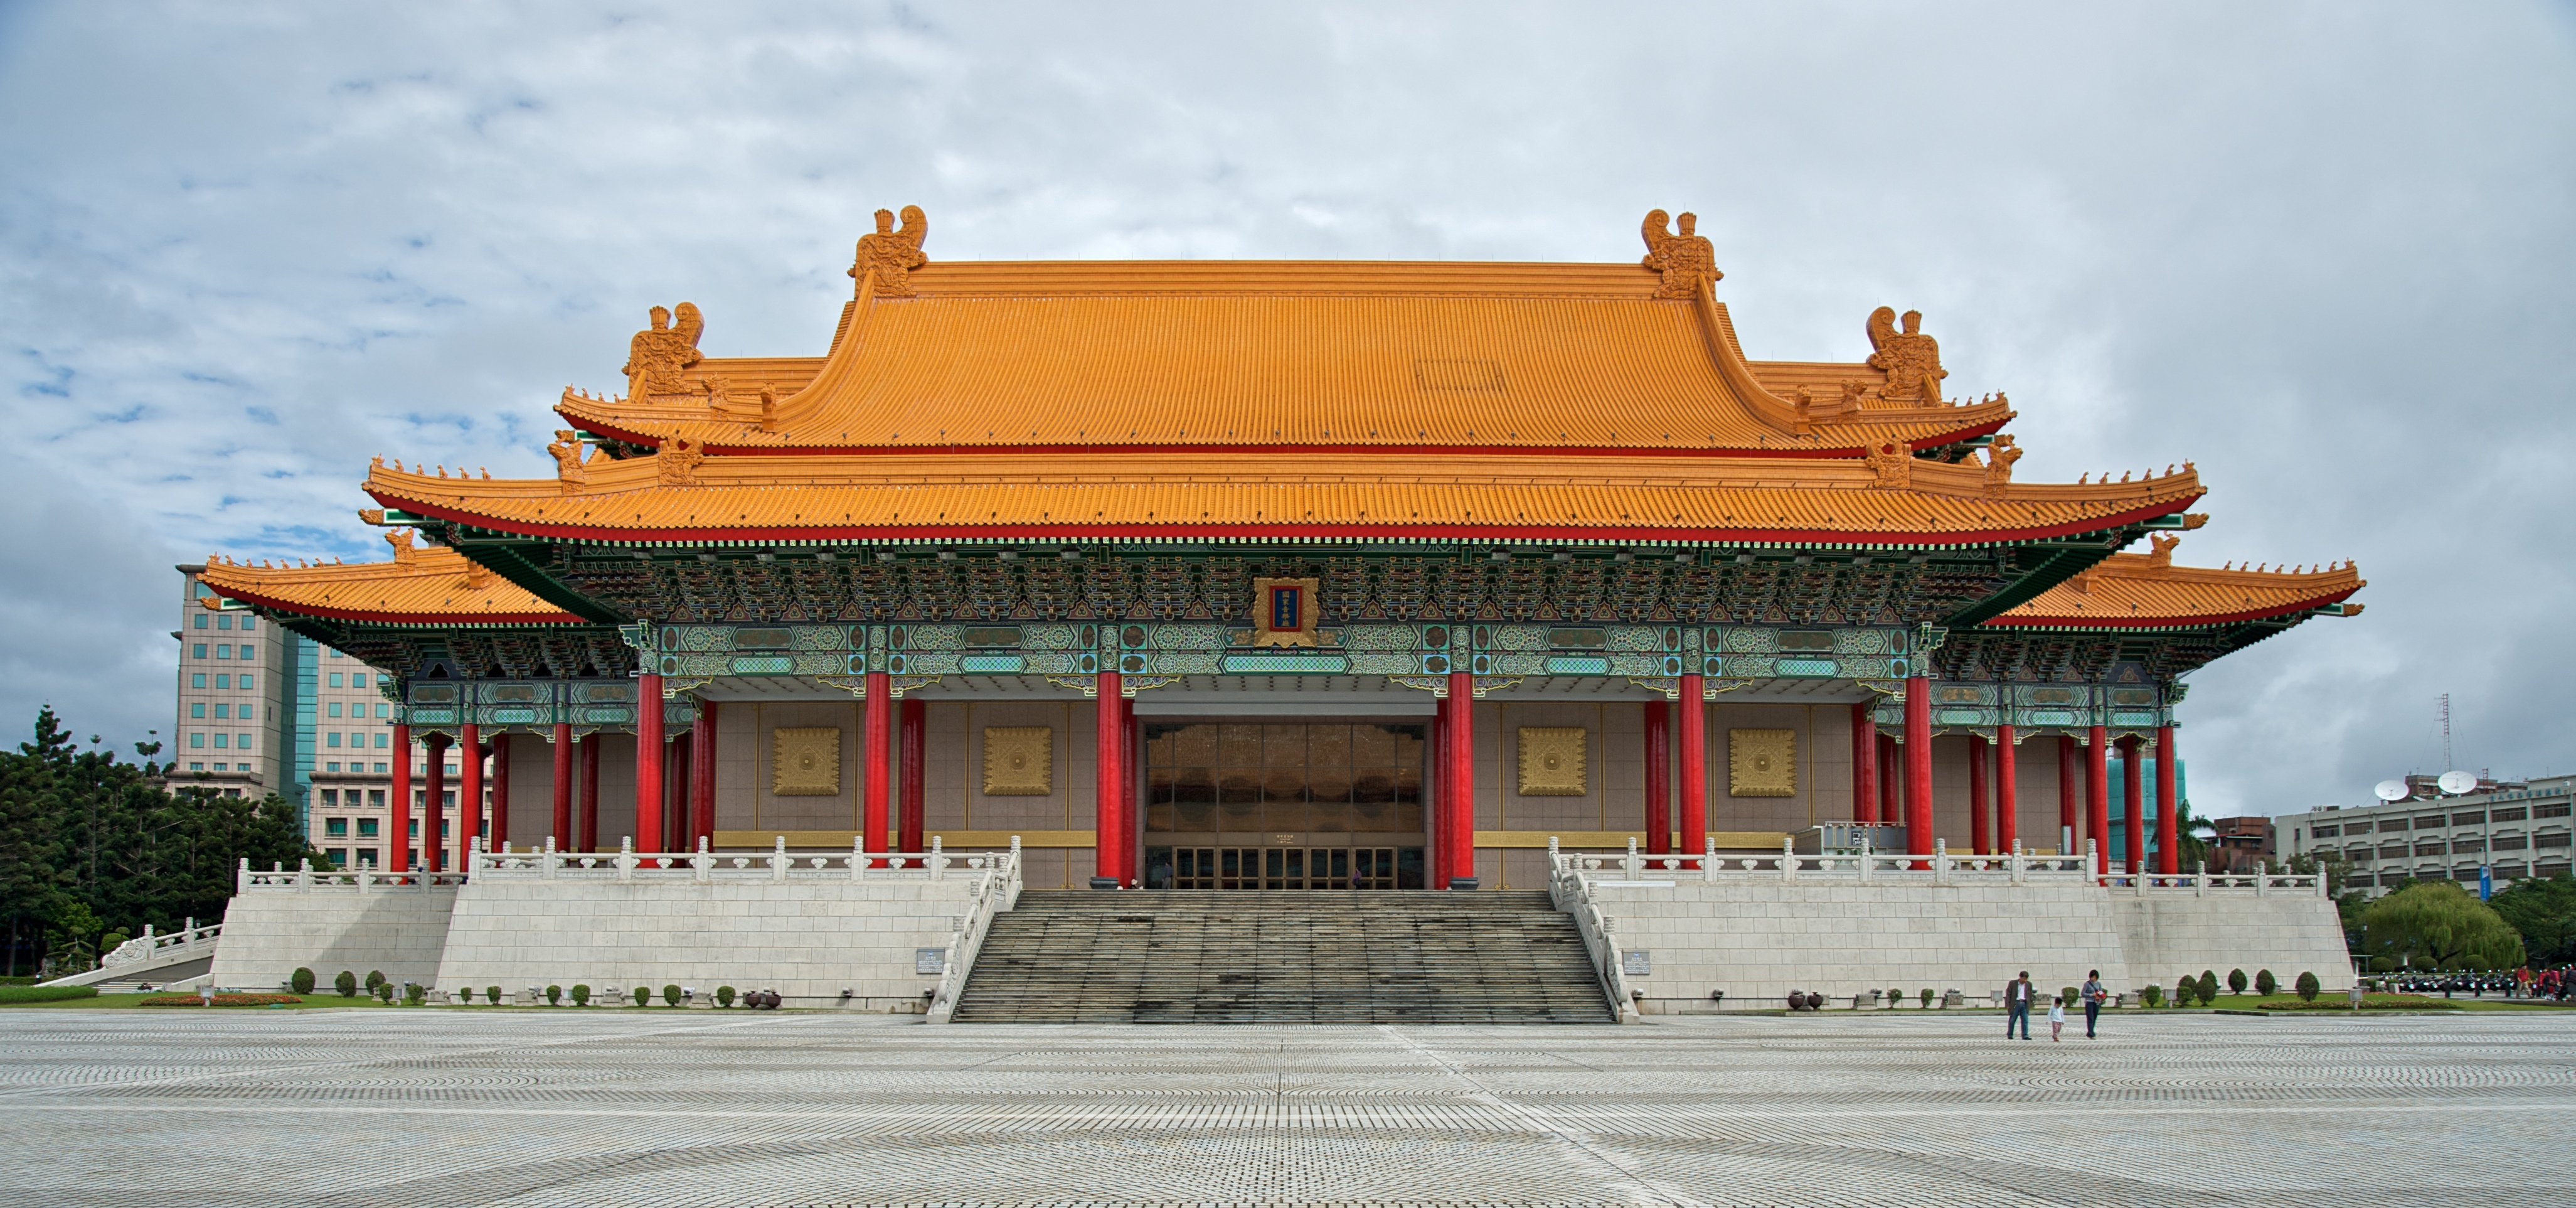 Cruises To Inhambane Mozambique additionally Exploring Navajo Nation Or Dine Nation additionally File taiwan 2009 taipei national concert hall at chian kai shek cultural center frd 7364 pano extracted furthermore Walkways further Must Have Winter Food In Delhi. on 3